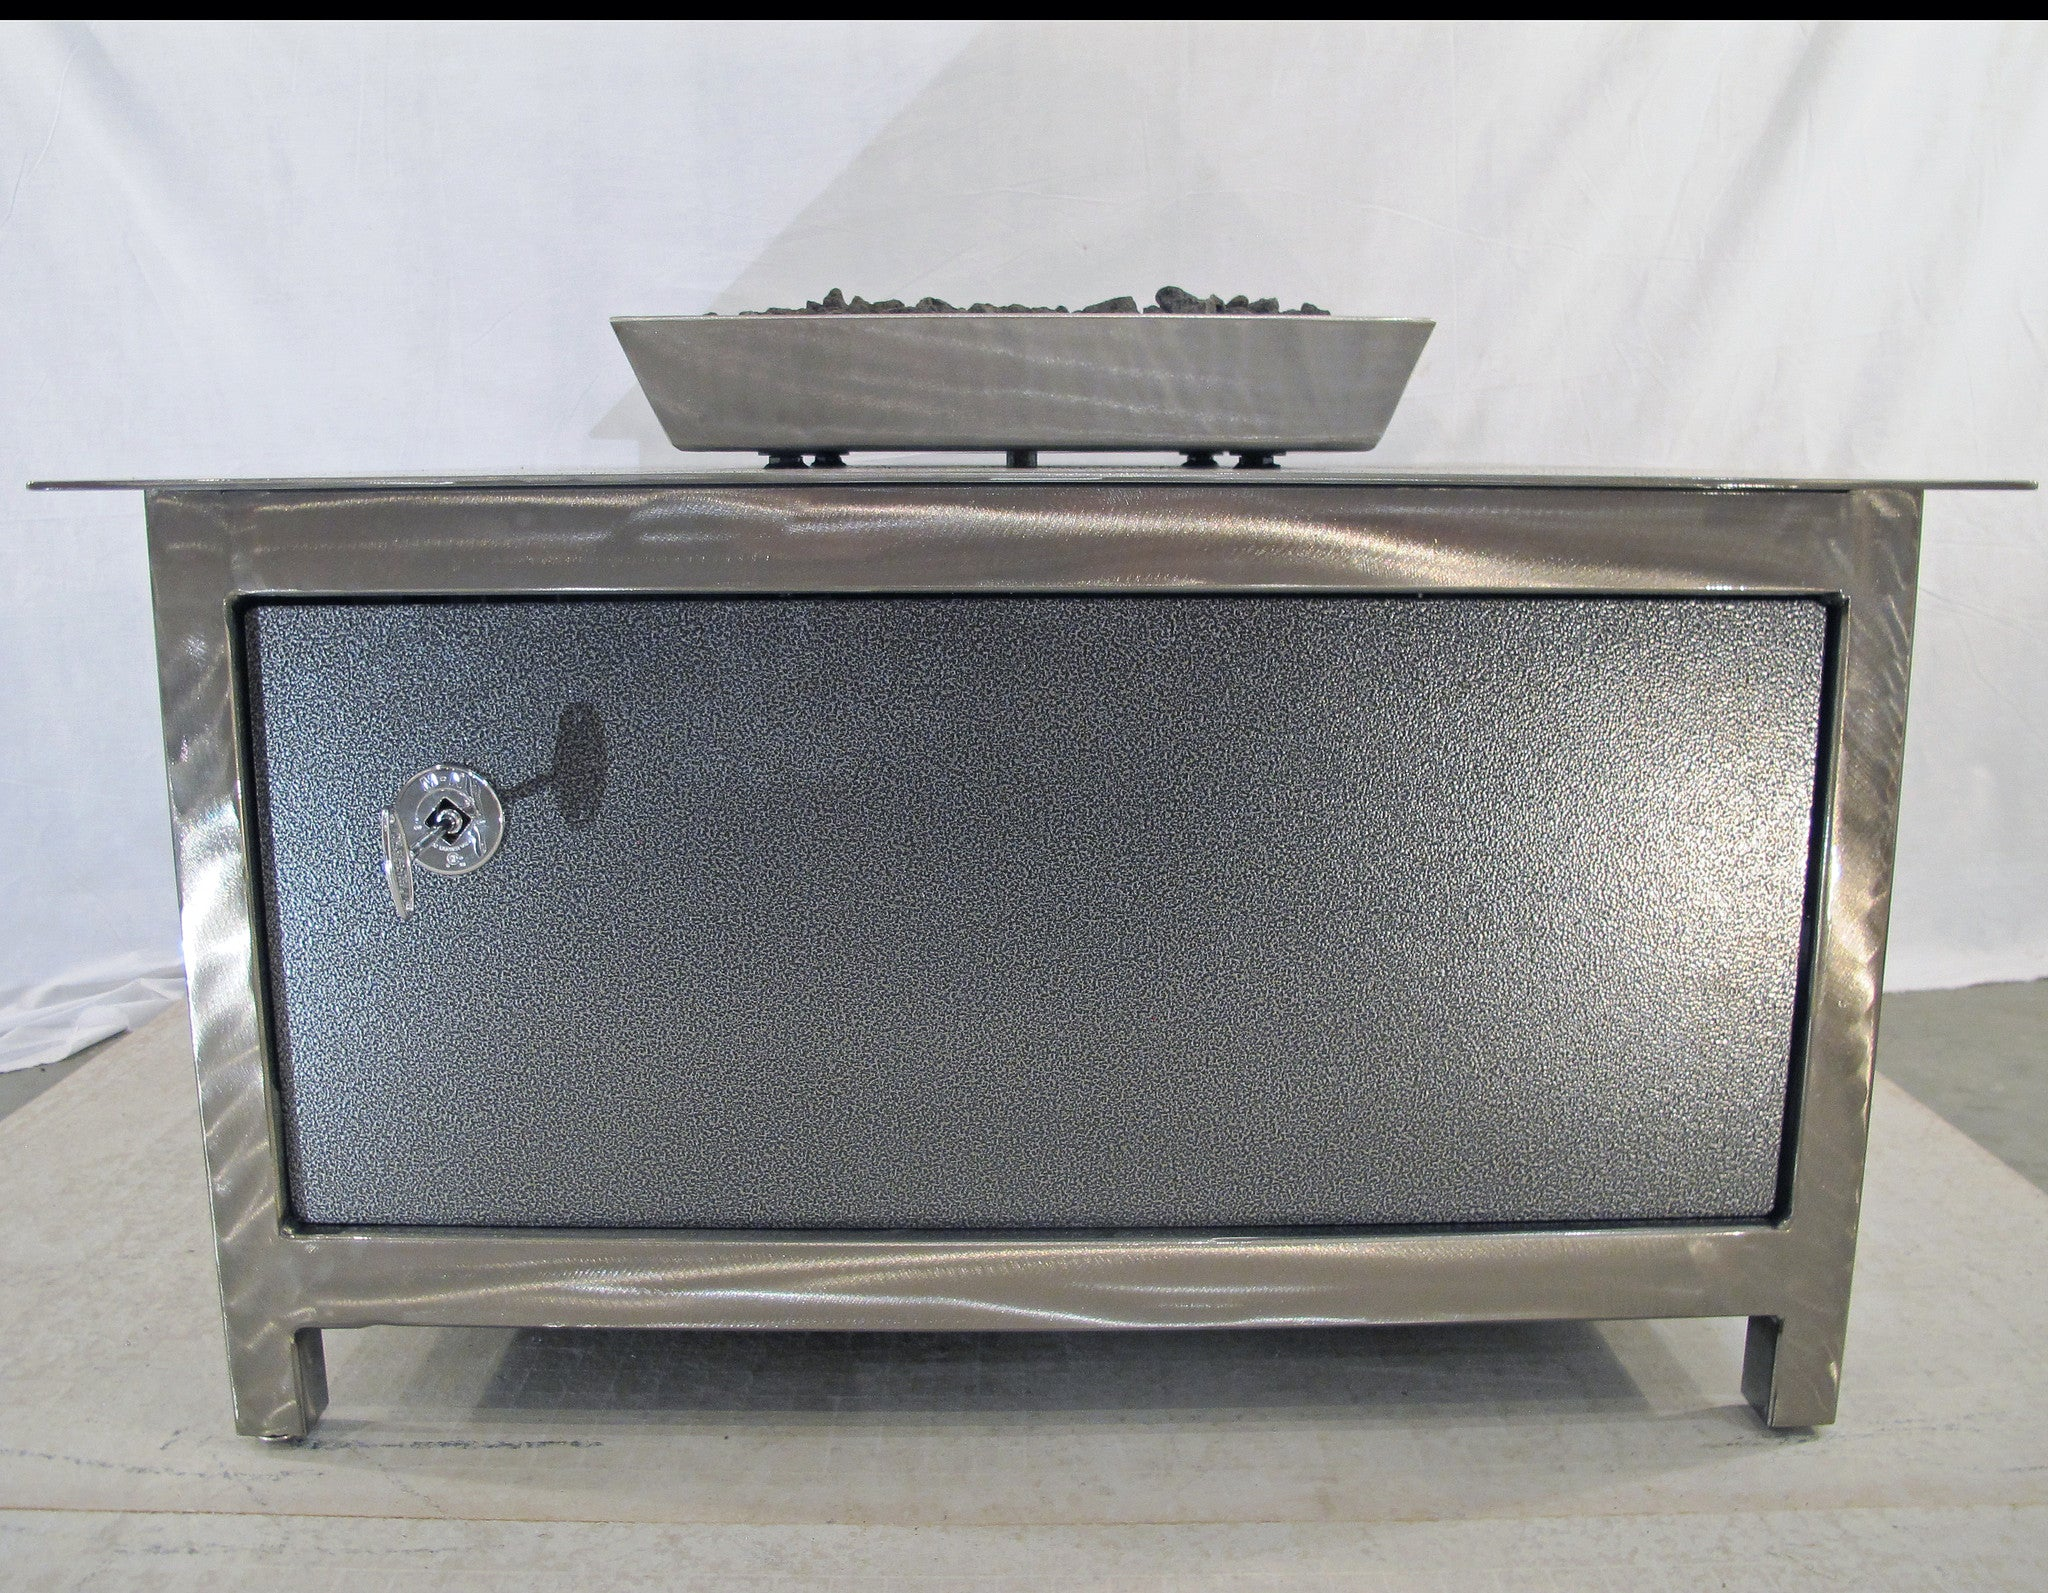 IMPACT Fire Table, stainless steel, hand brushed, powder coated clear, square, best firepit or fire pit, burn natural gas or propane, silver vein powder coated steel side panel option, made in USA